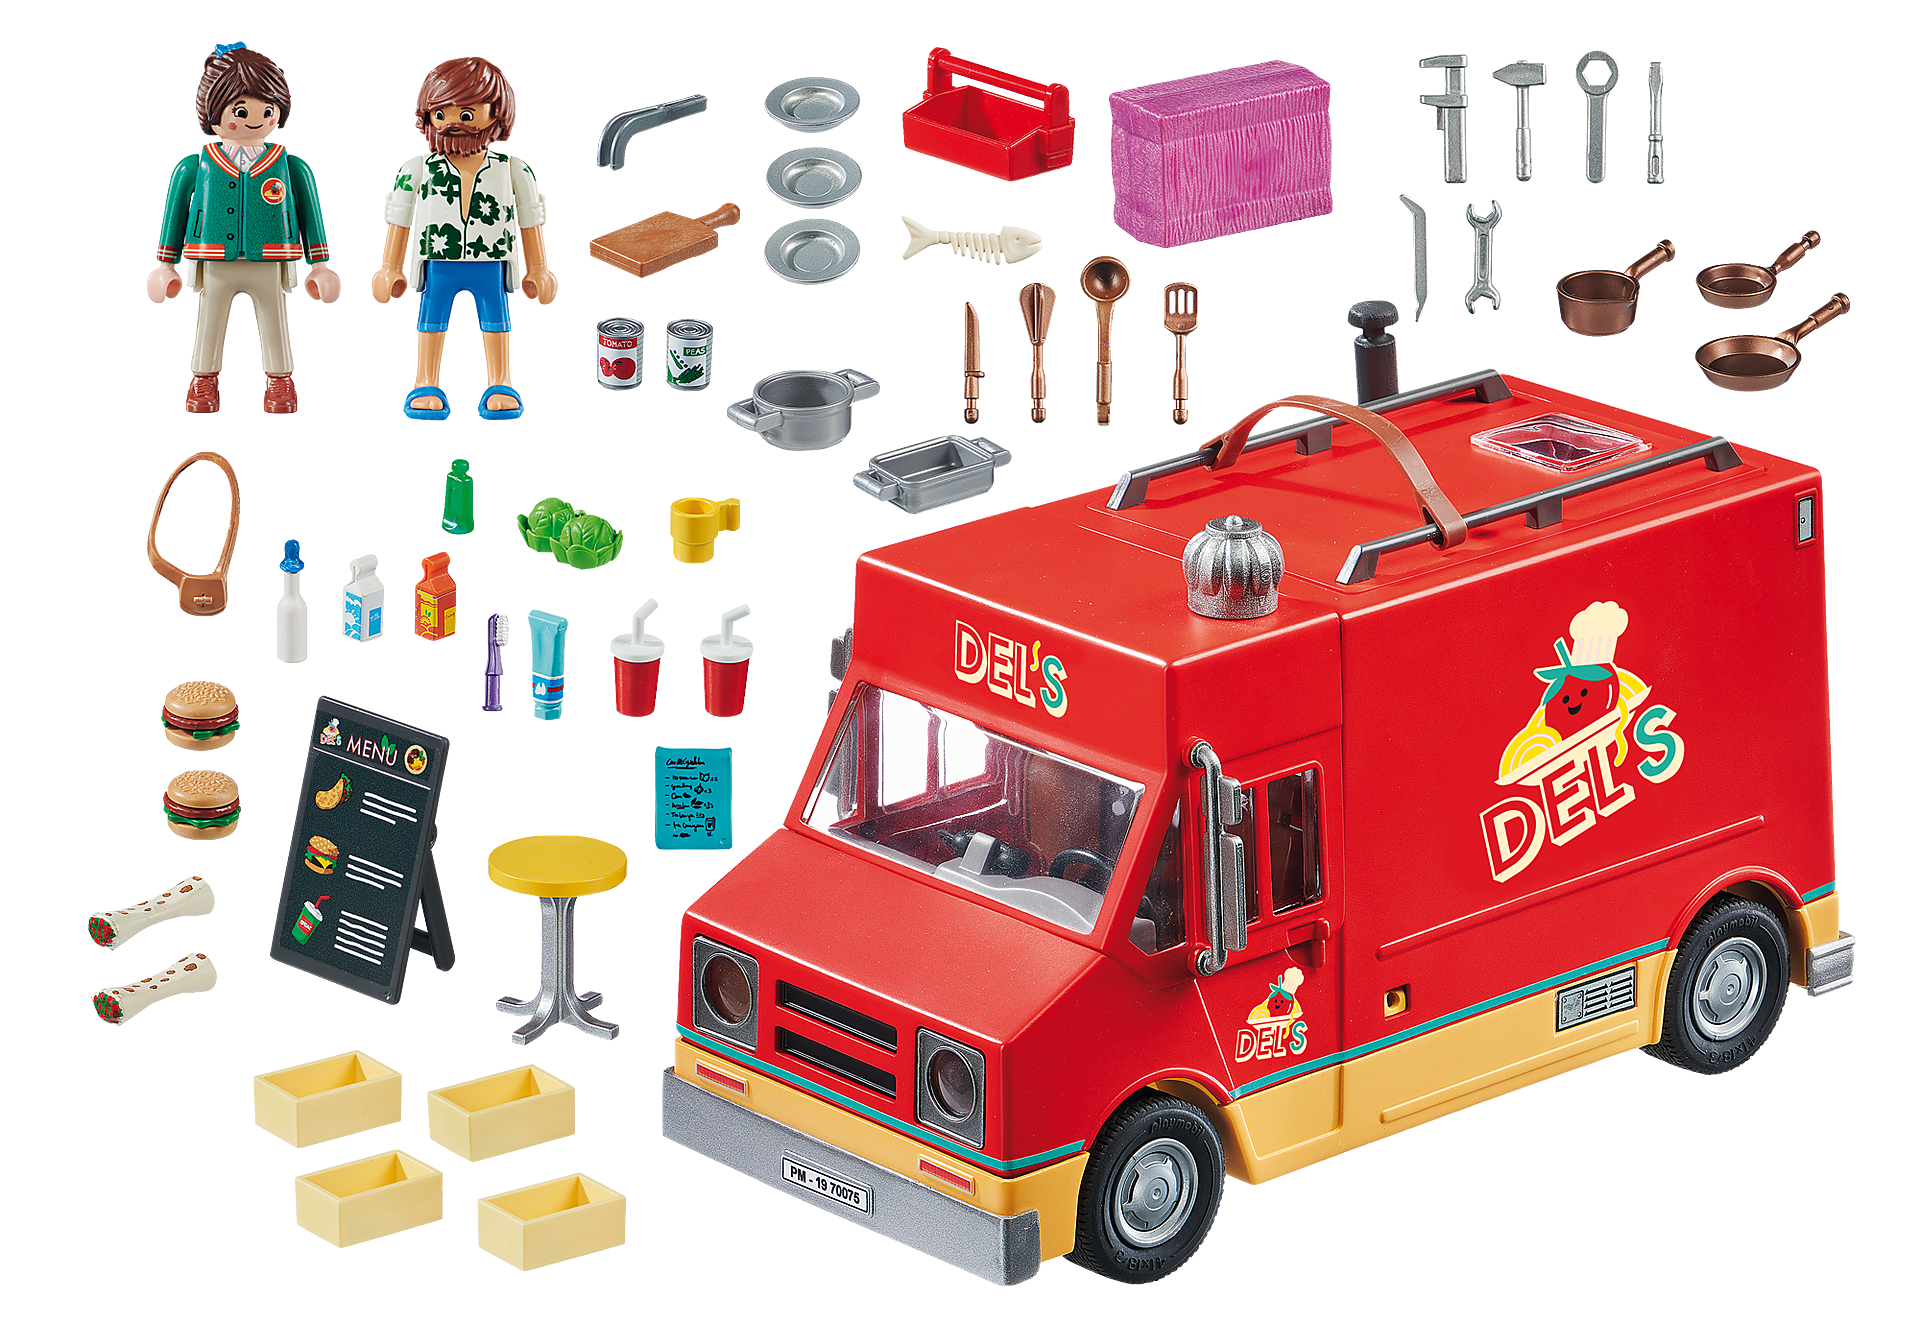 70075 PLAYMOBIL:THE MOVIE Del's Food Truck zoom image3